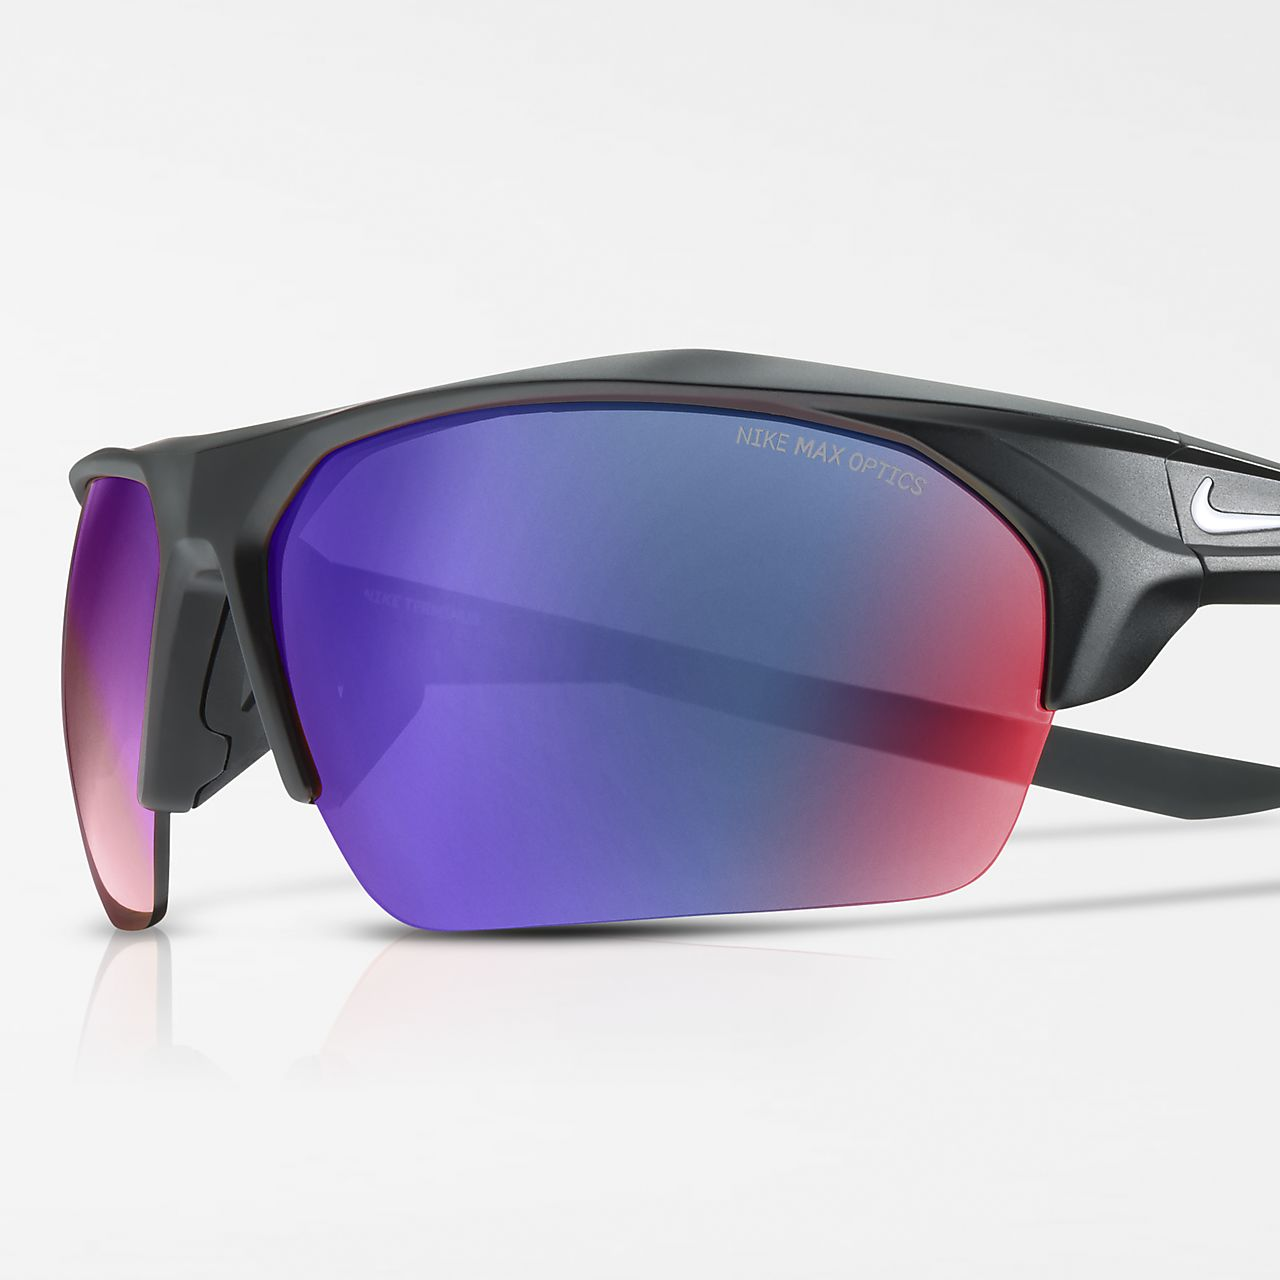 Nike Terminus Mirrored Sunglasses